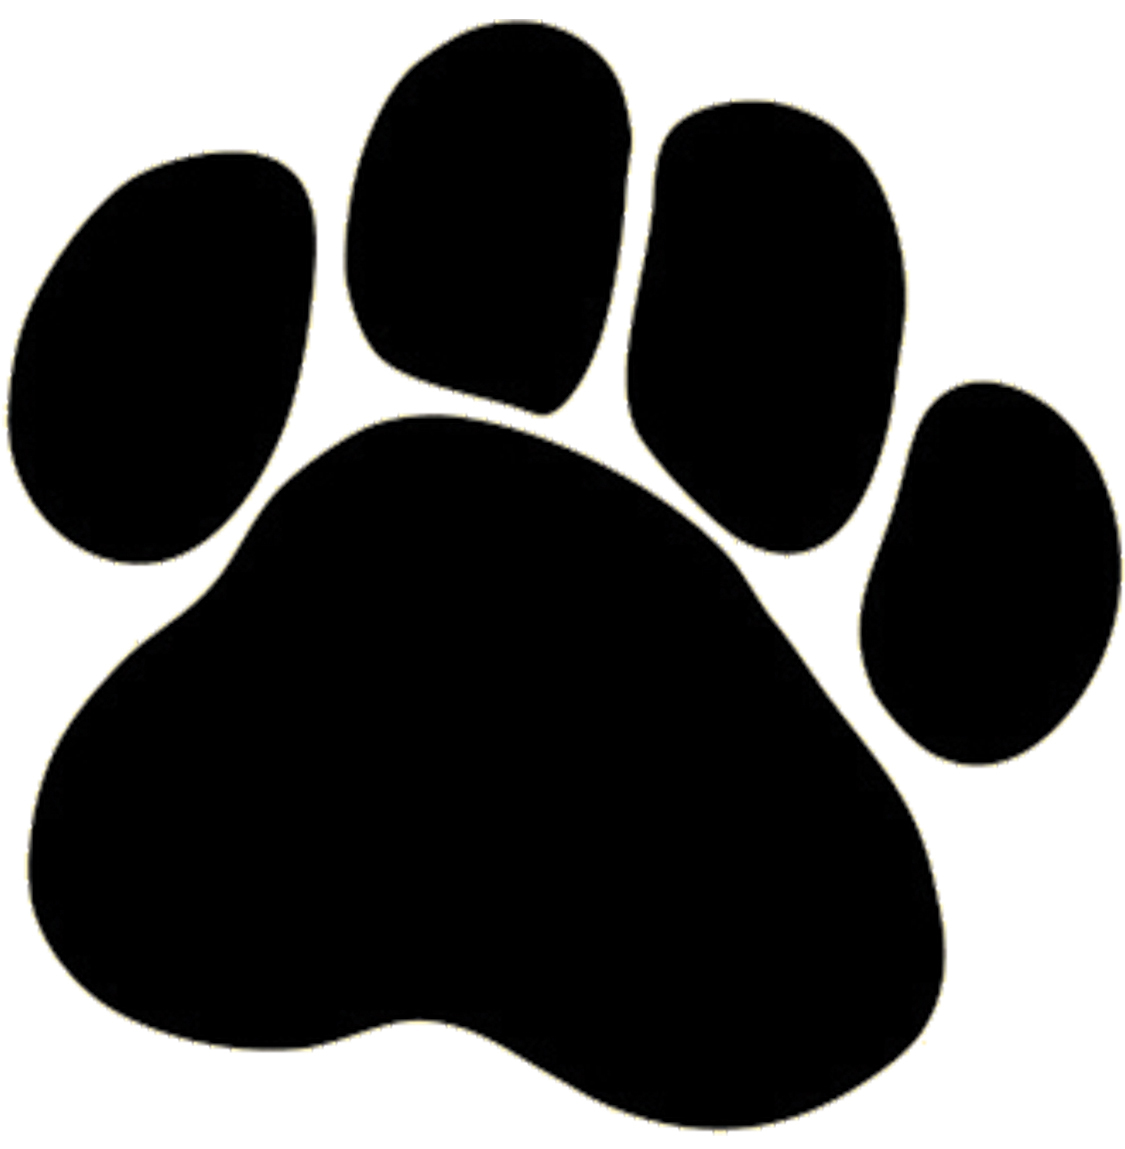 Free Dog Paw, Download Free Clip Art, Free Clip Art on.